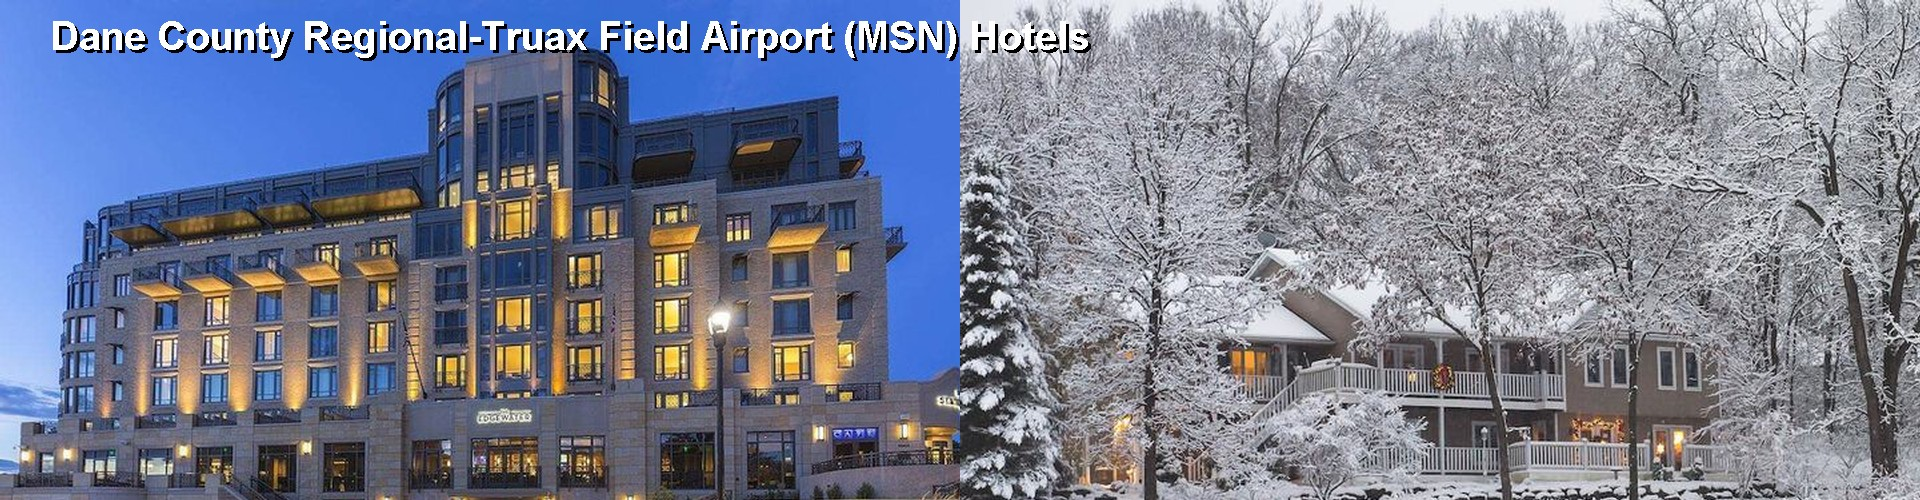 5 Best Hotels near Dane County Regional-Truax Field Airport (MSN)